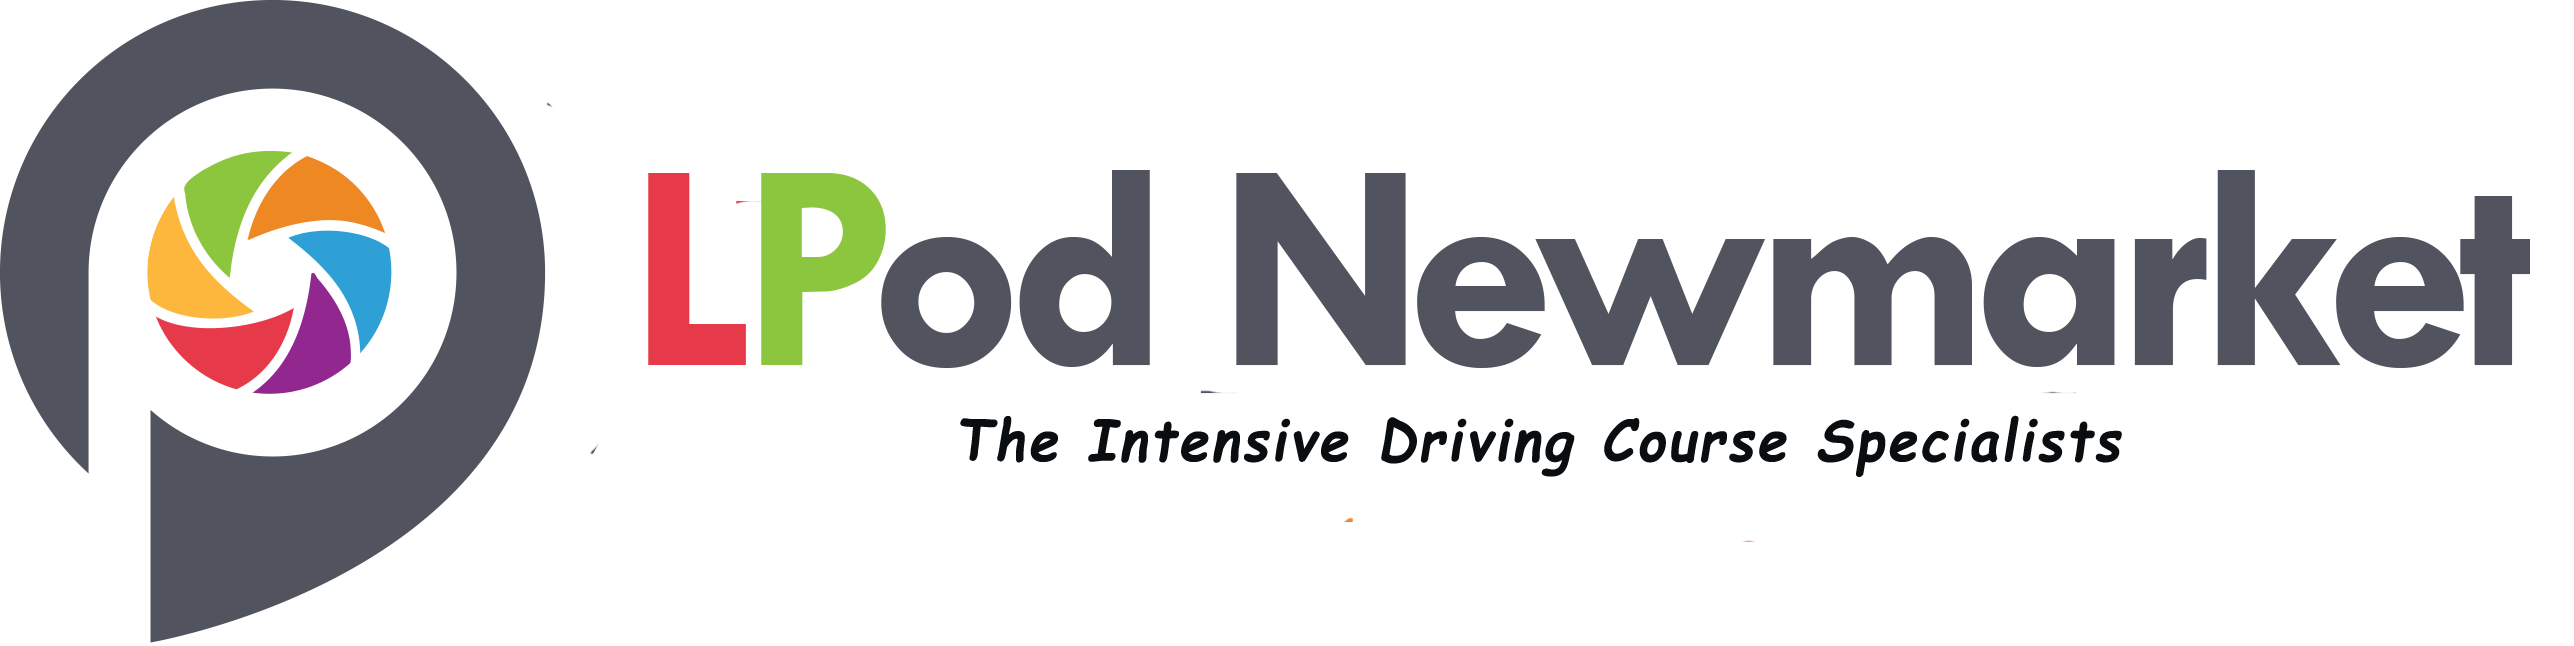 intensive driving courses newmarket, intensive driving school newmarket